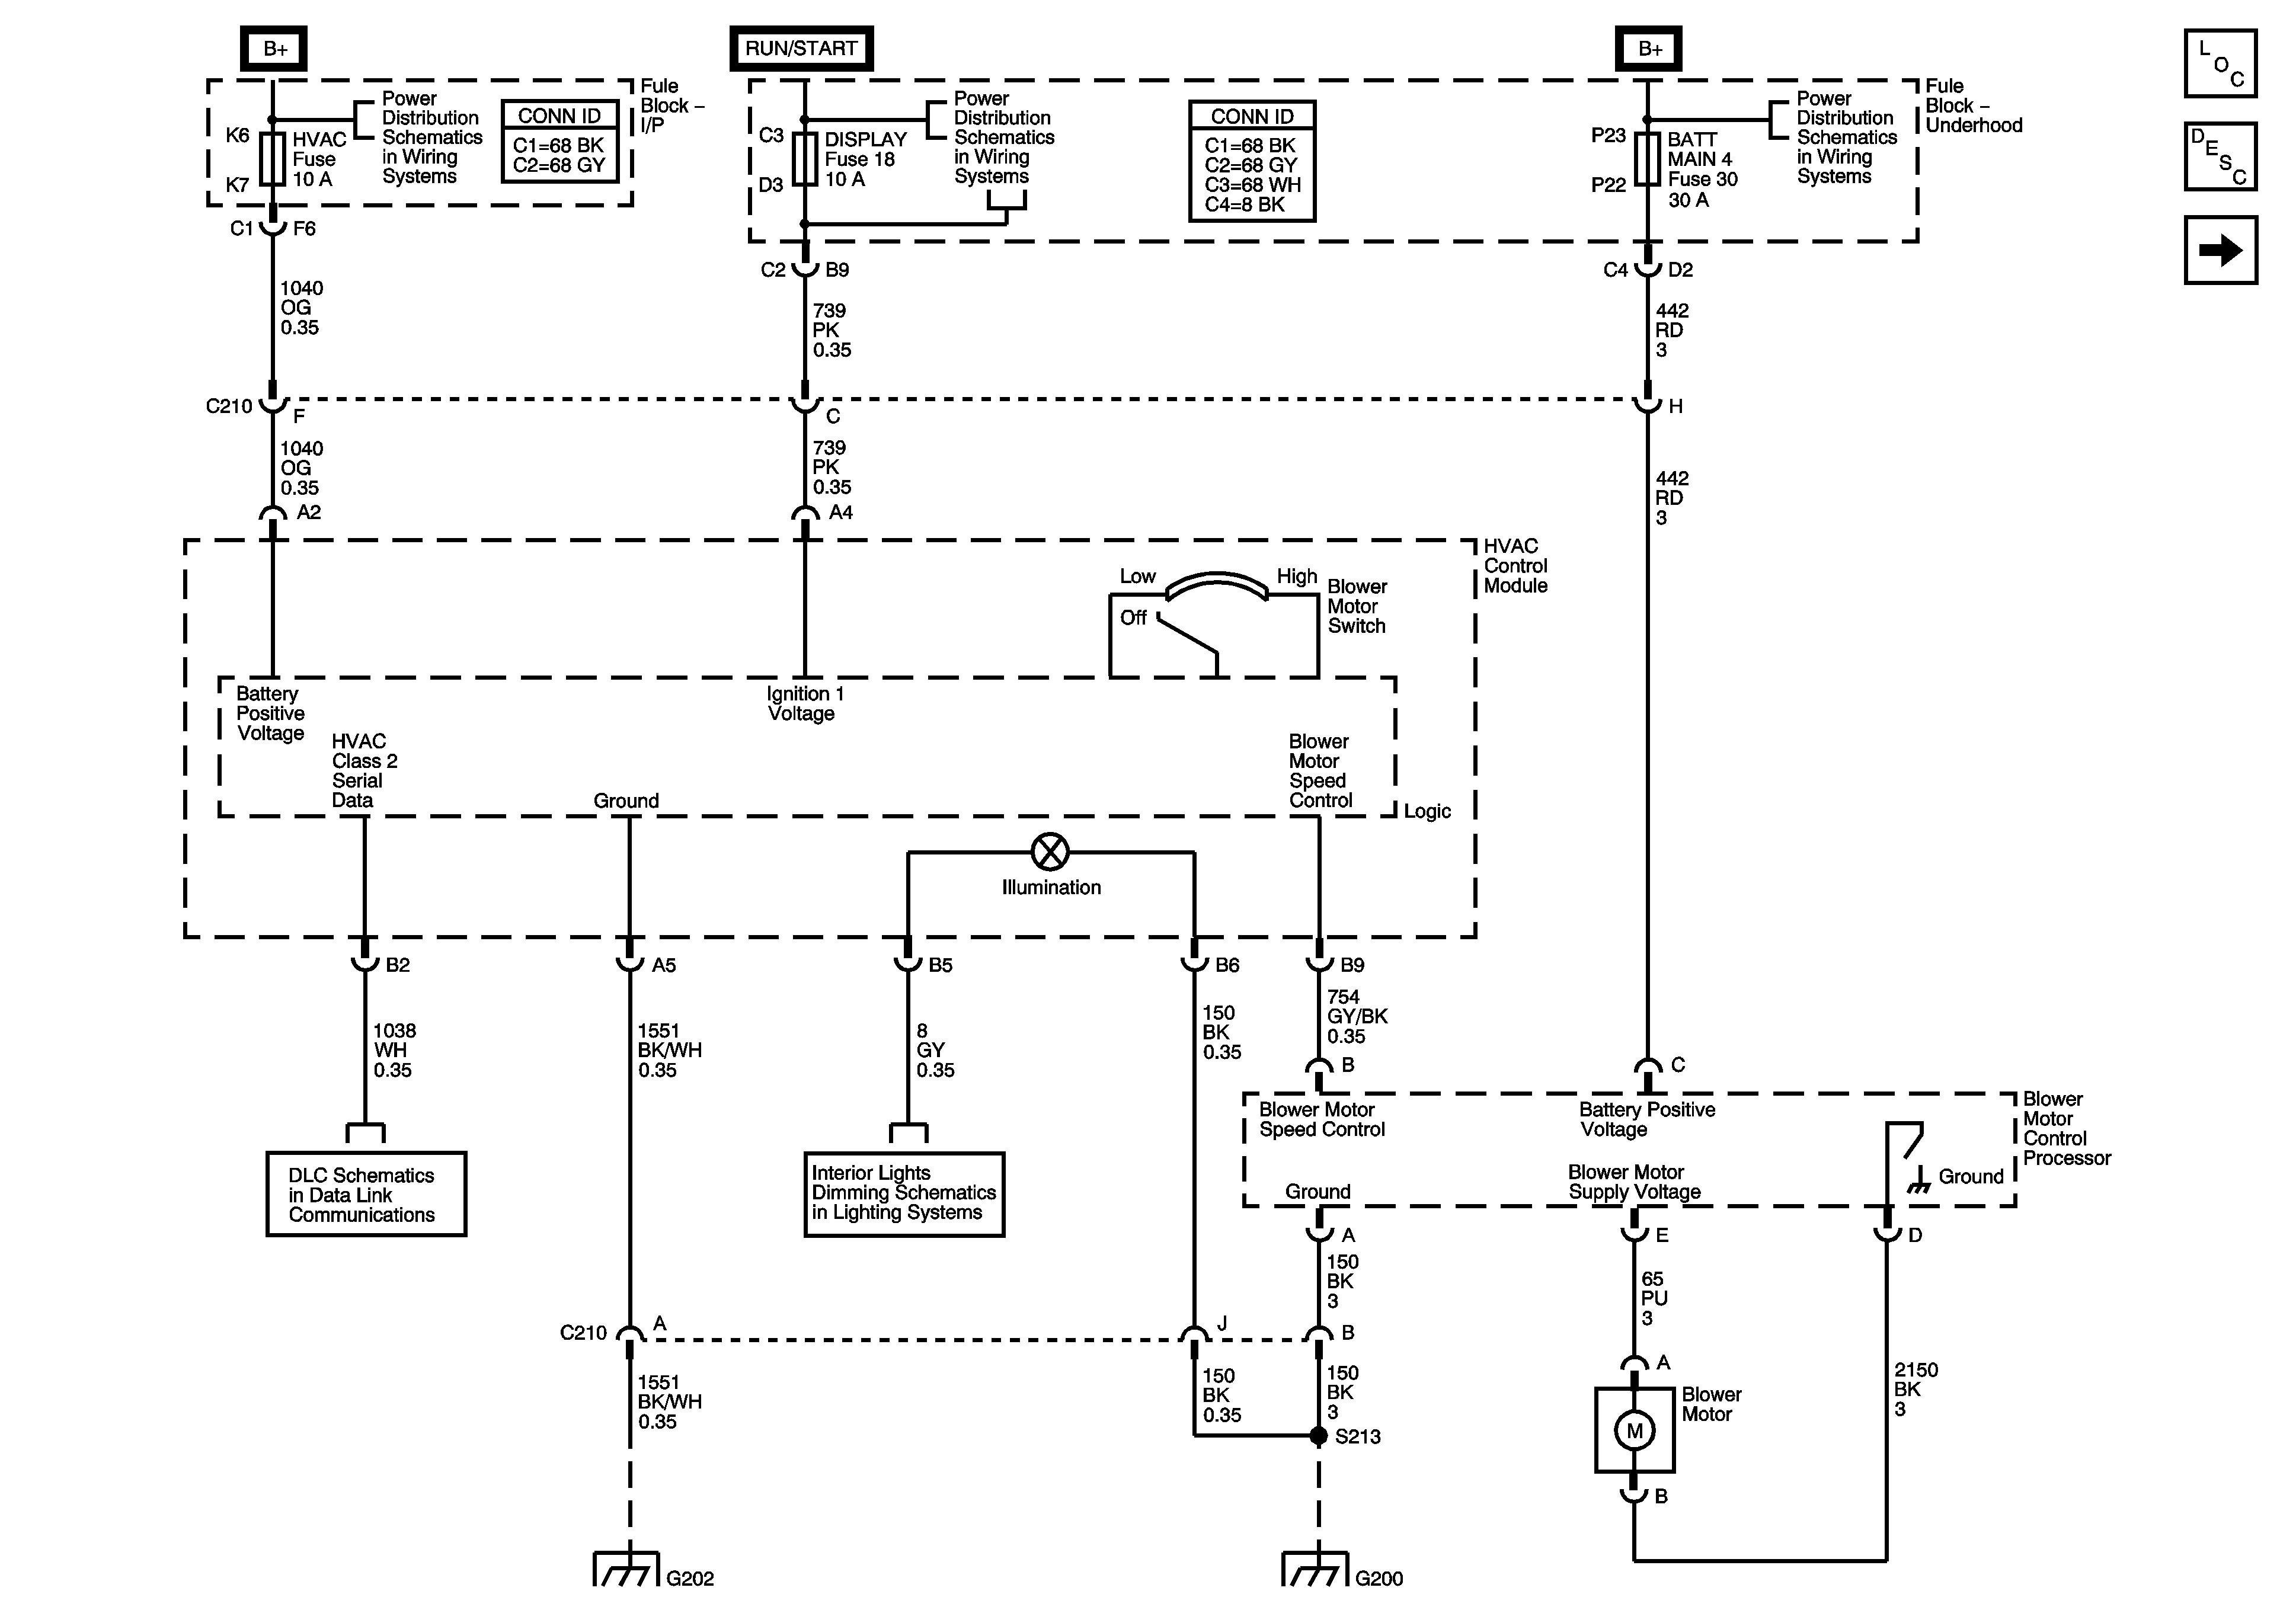 gtp engine diagram electrical wire symbol wiring diagram u2022 rh wiringdiagrammedia today 2002 Pontiac Grand Prix Engine Diagram 2006 Pontiac Grand Prix Engine Diagram